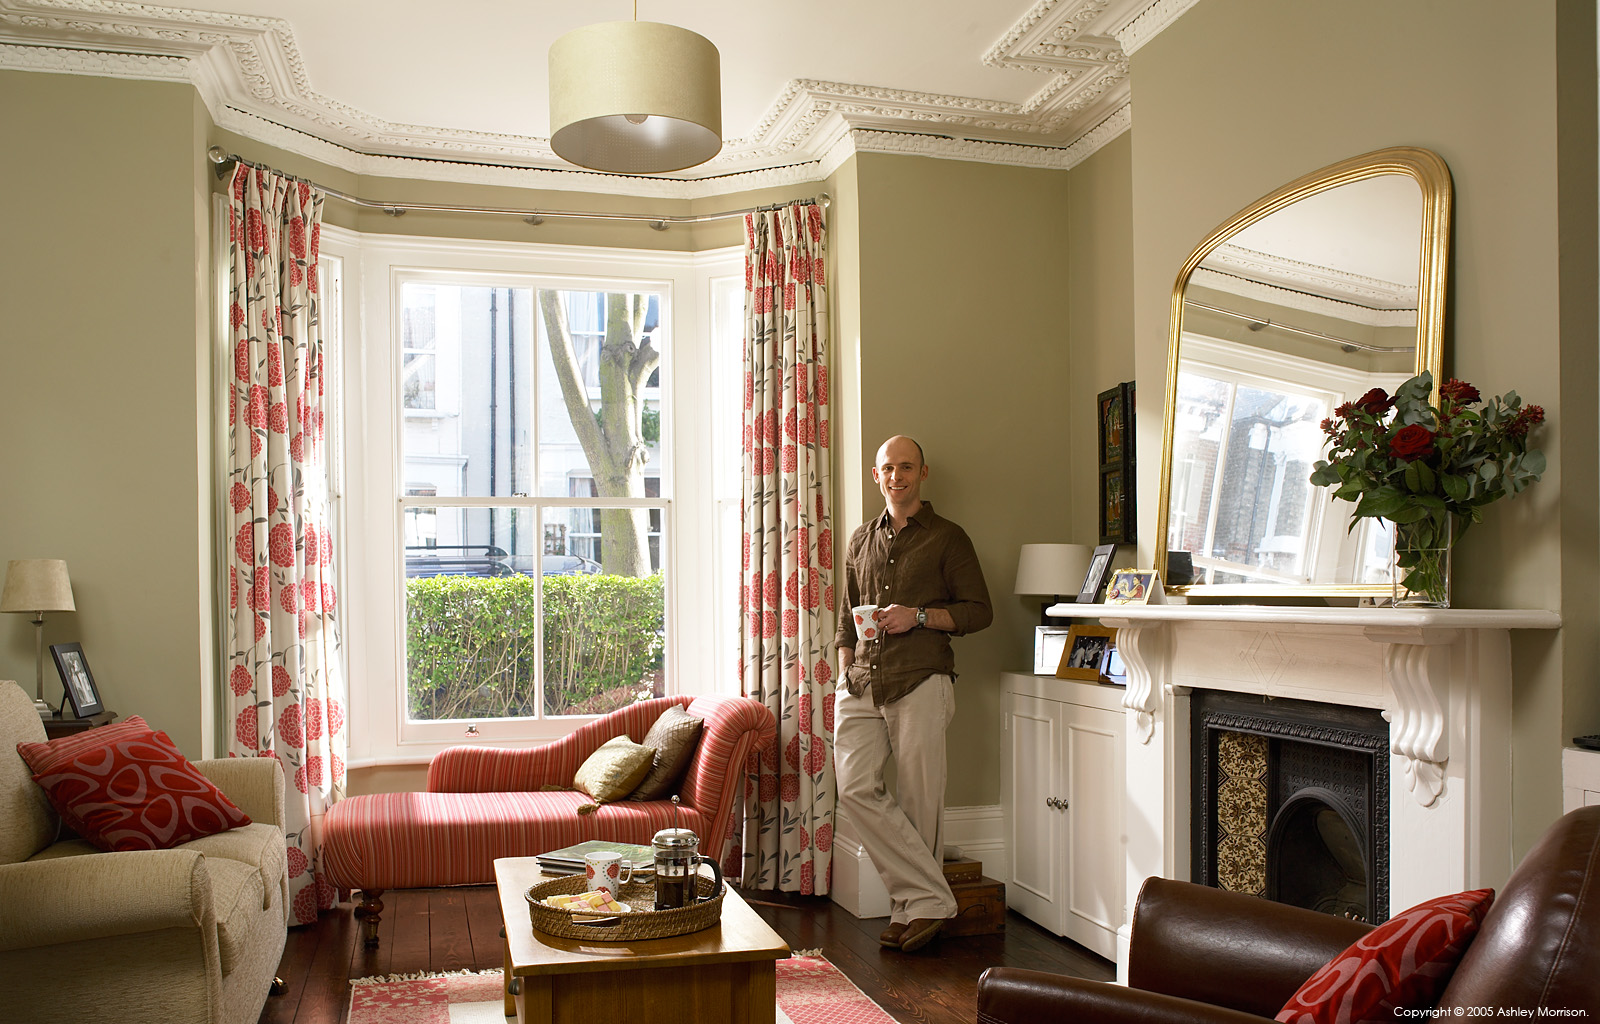 TV presenter Ian Blandford in the sitting room of his Victorian terraced house in the Clapham area of London.